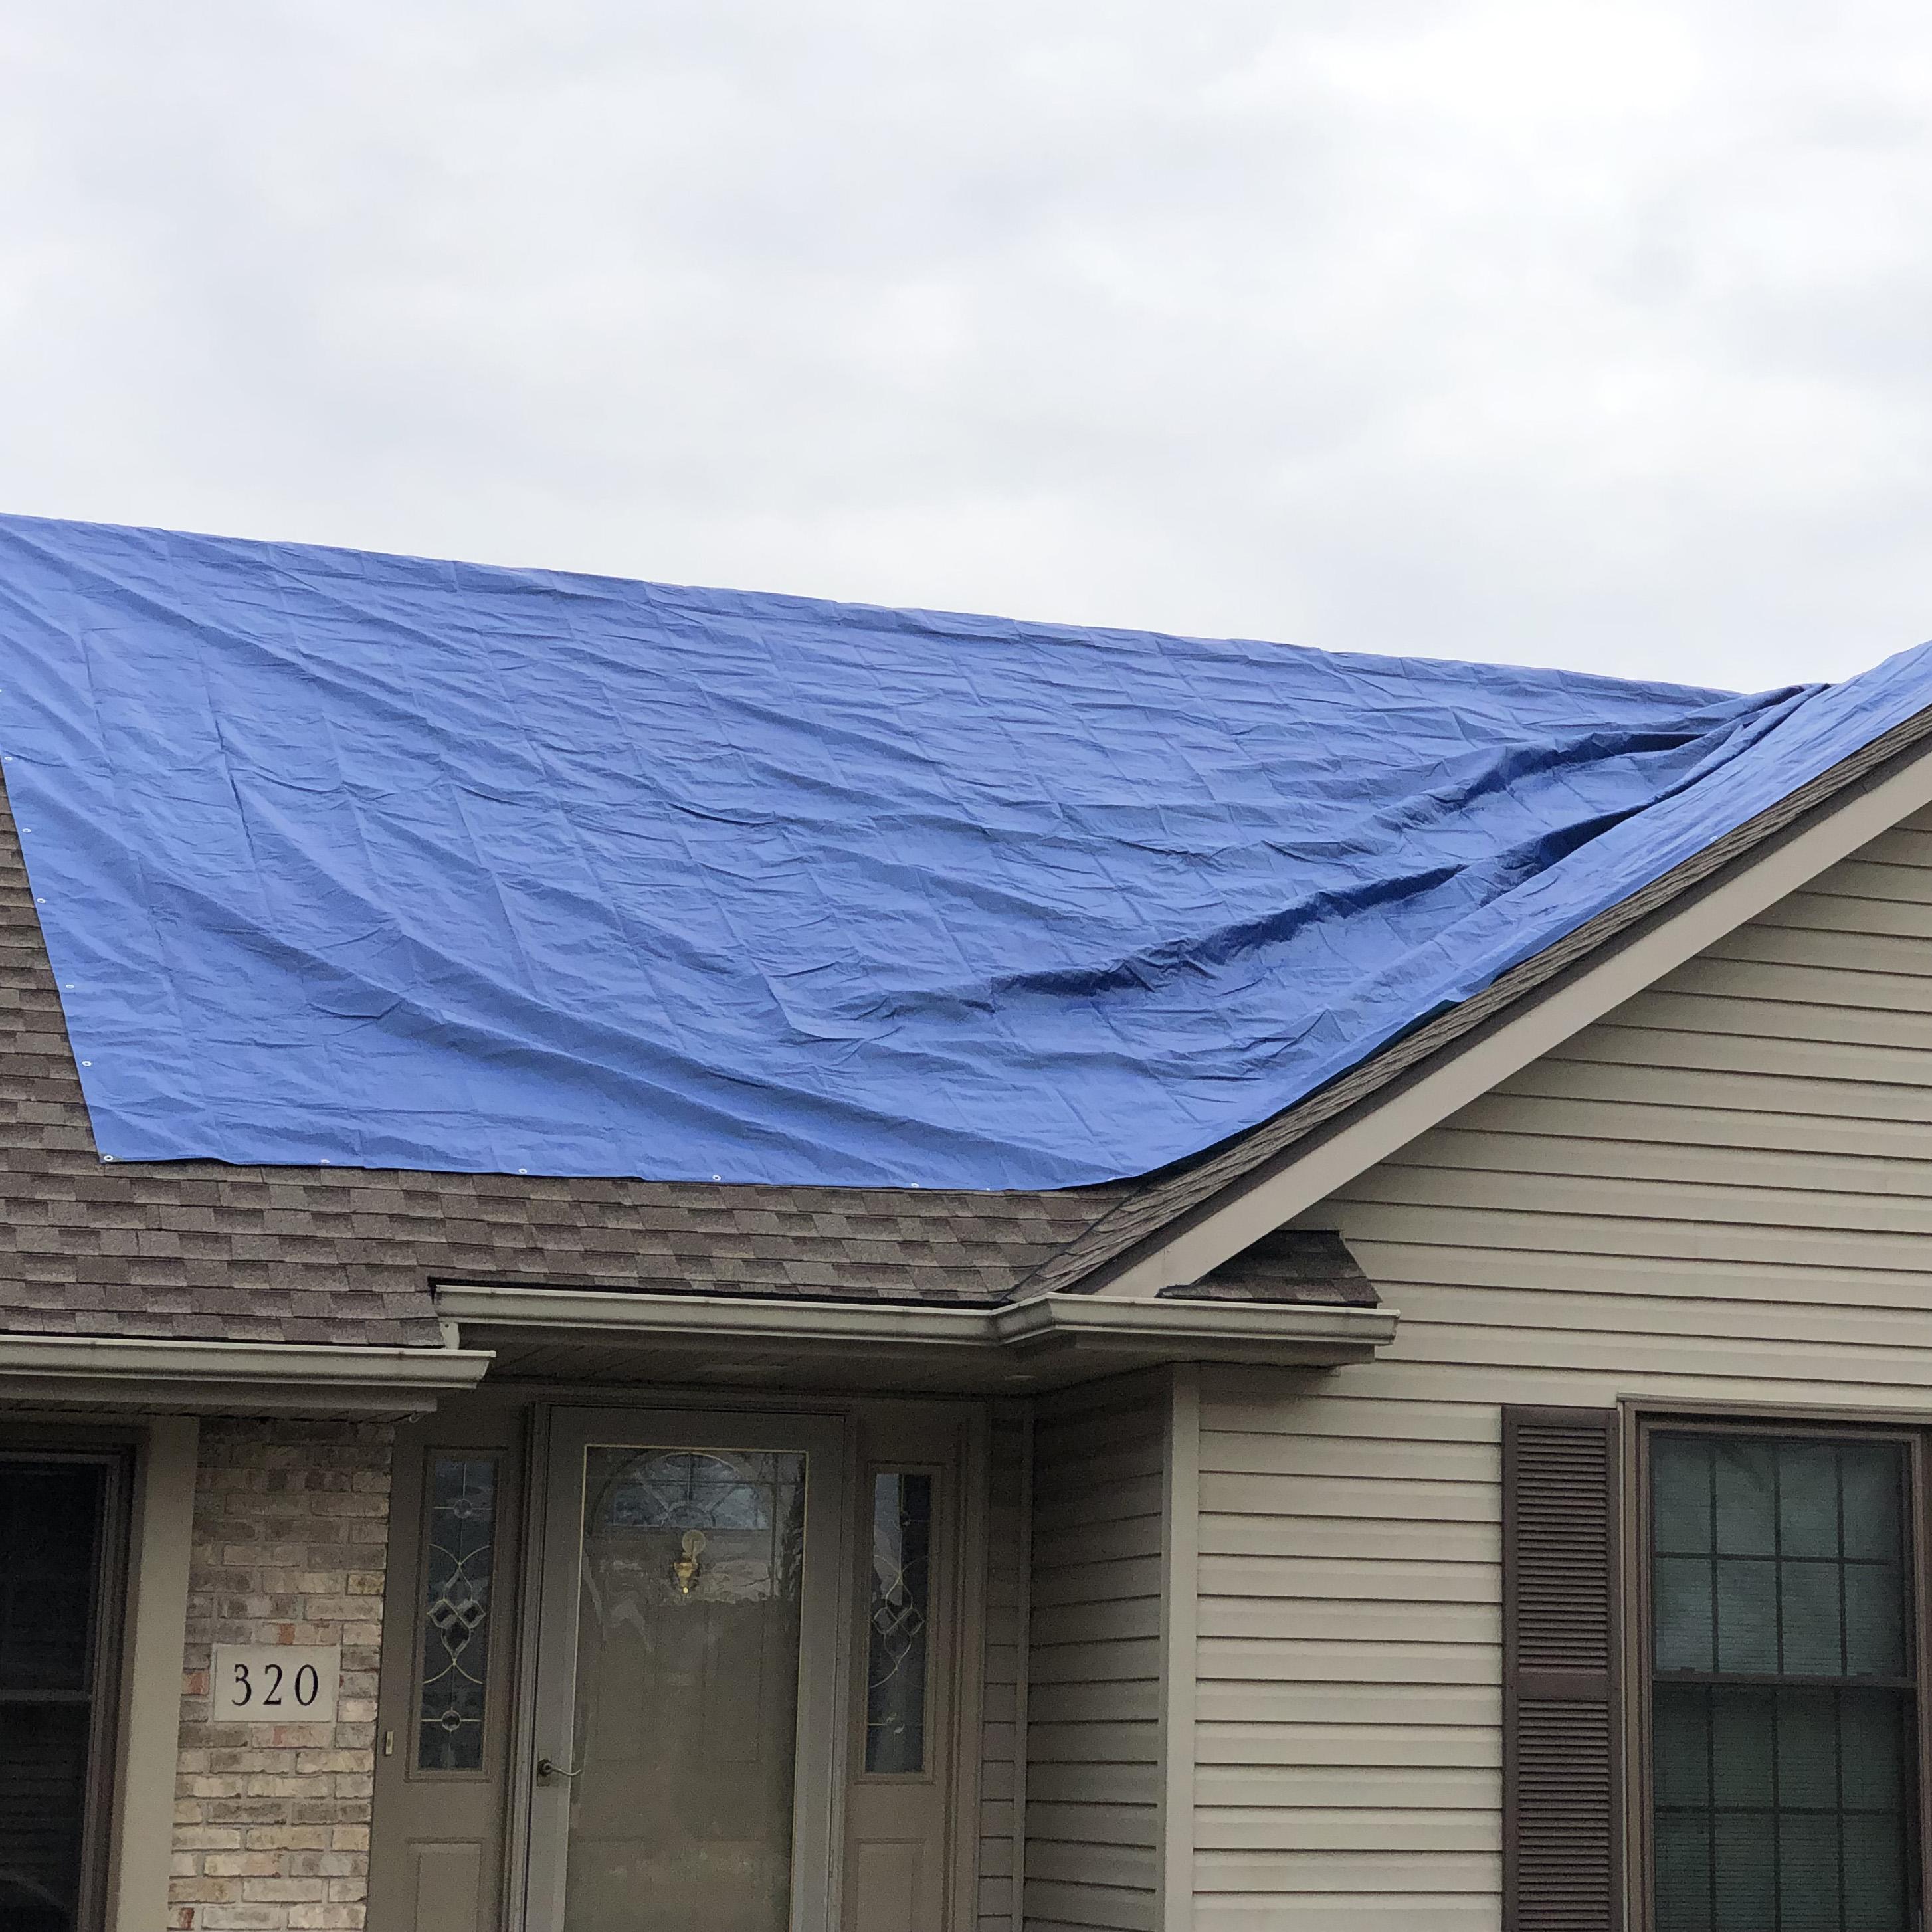 Blue Chip Construction and Roofing Lima Ohio Emergency Repair